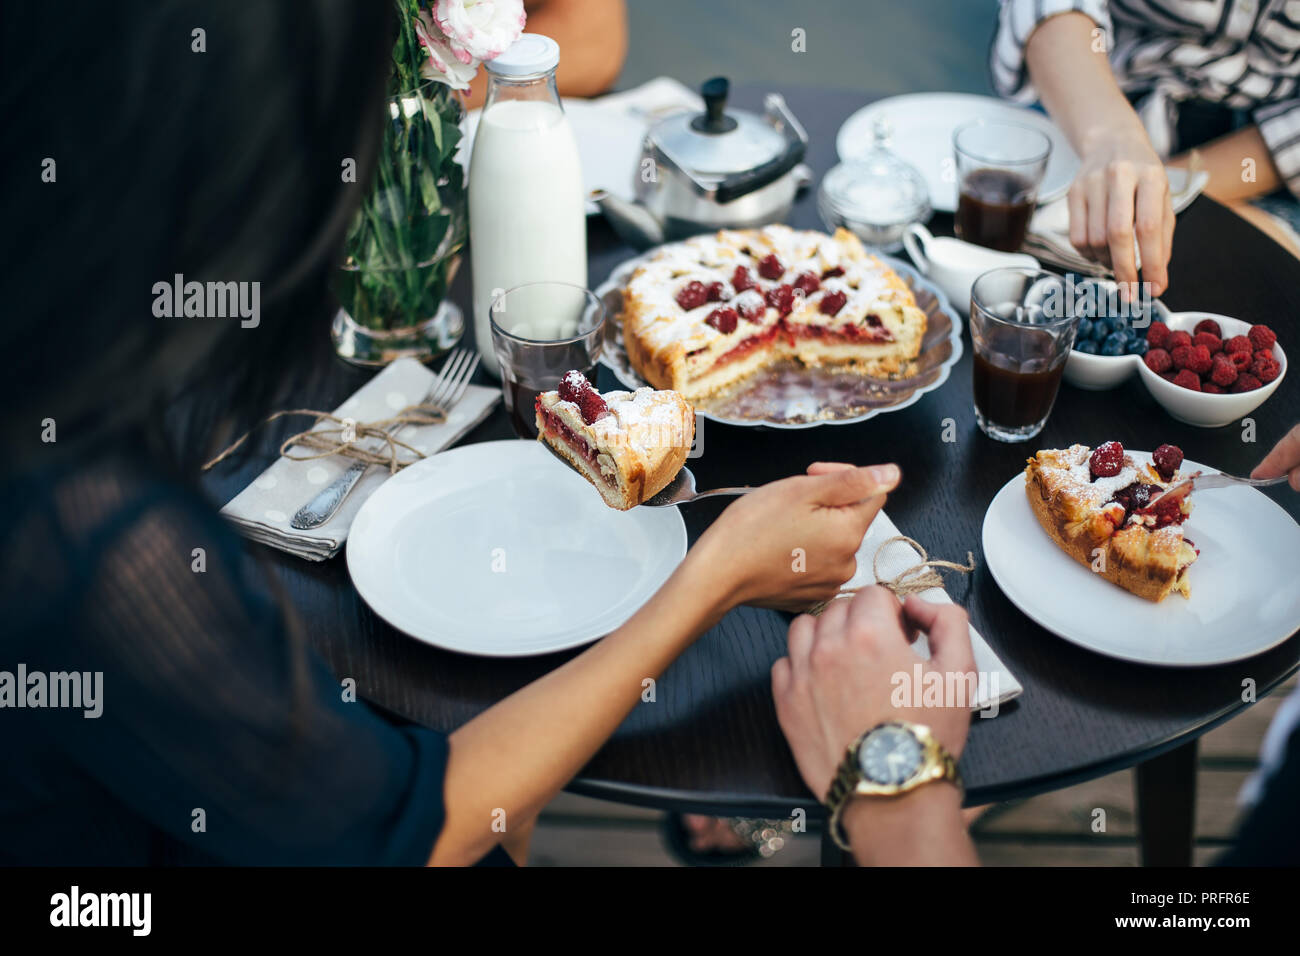 People Eating Pie Stock Photos & People Eating Pie Stock ...